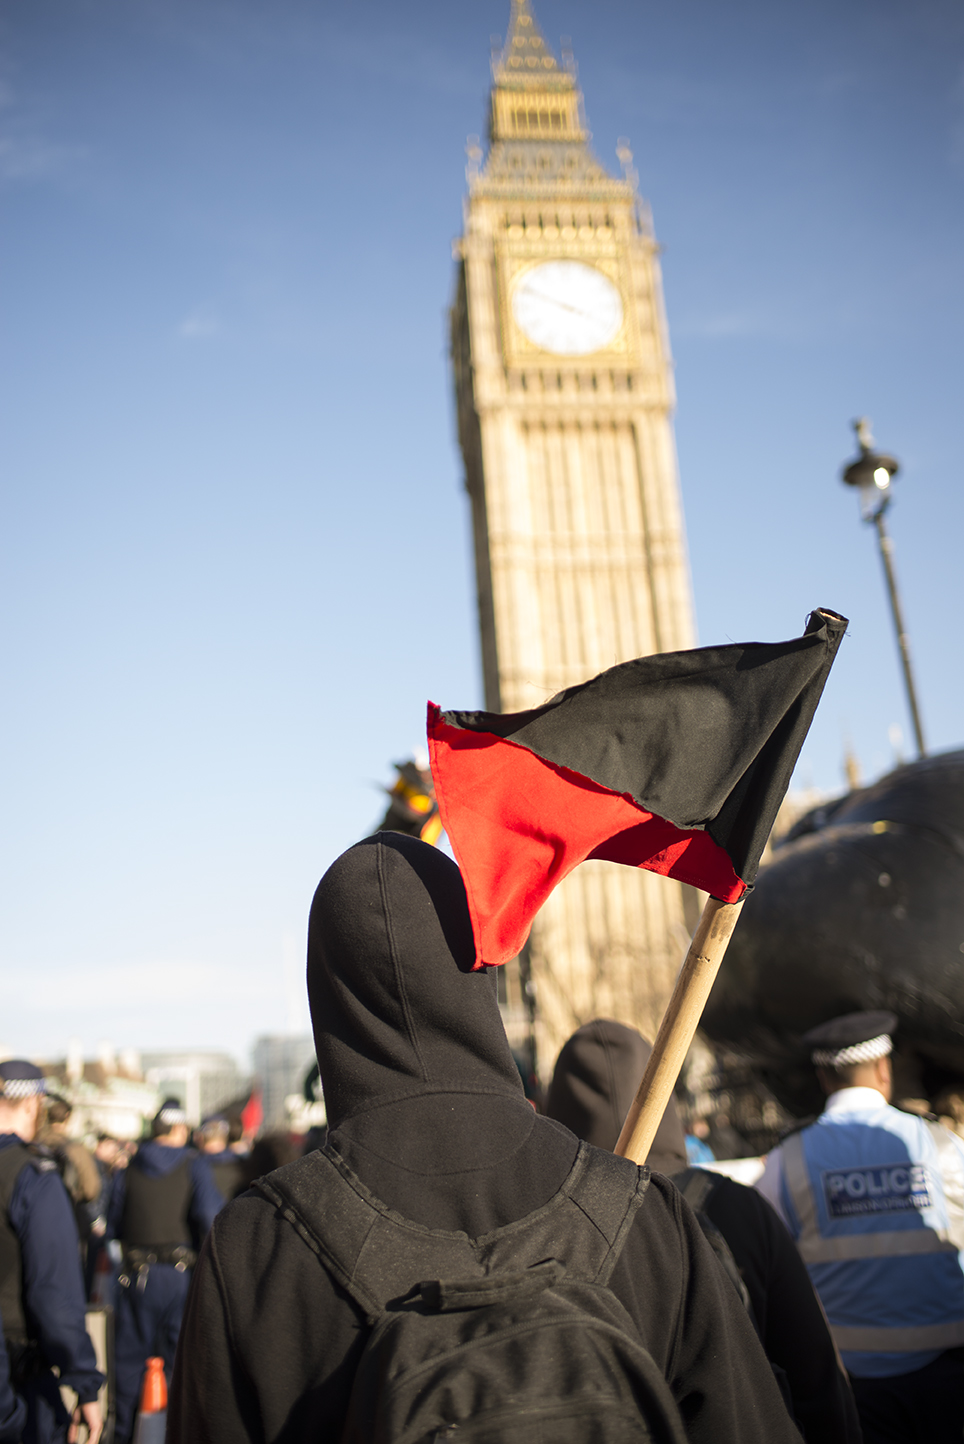 Protestor carrying black and red flag outside Houses of Parliament. [Elena McDonough]